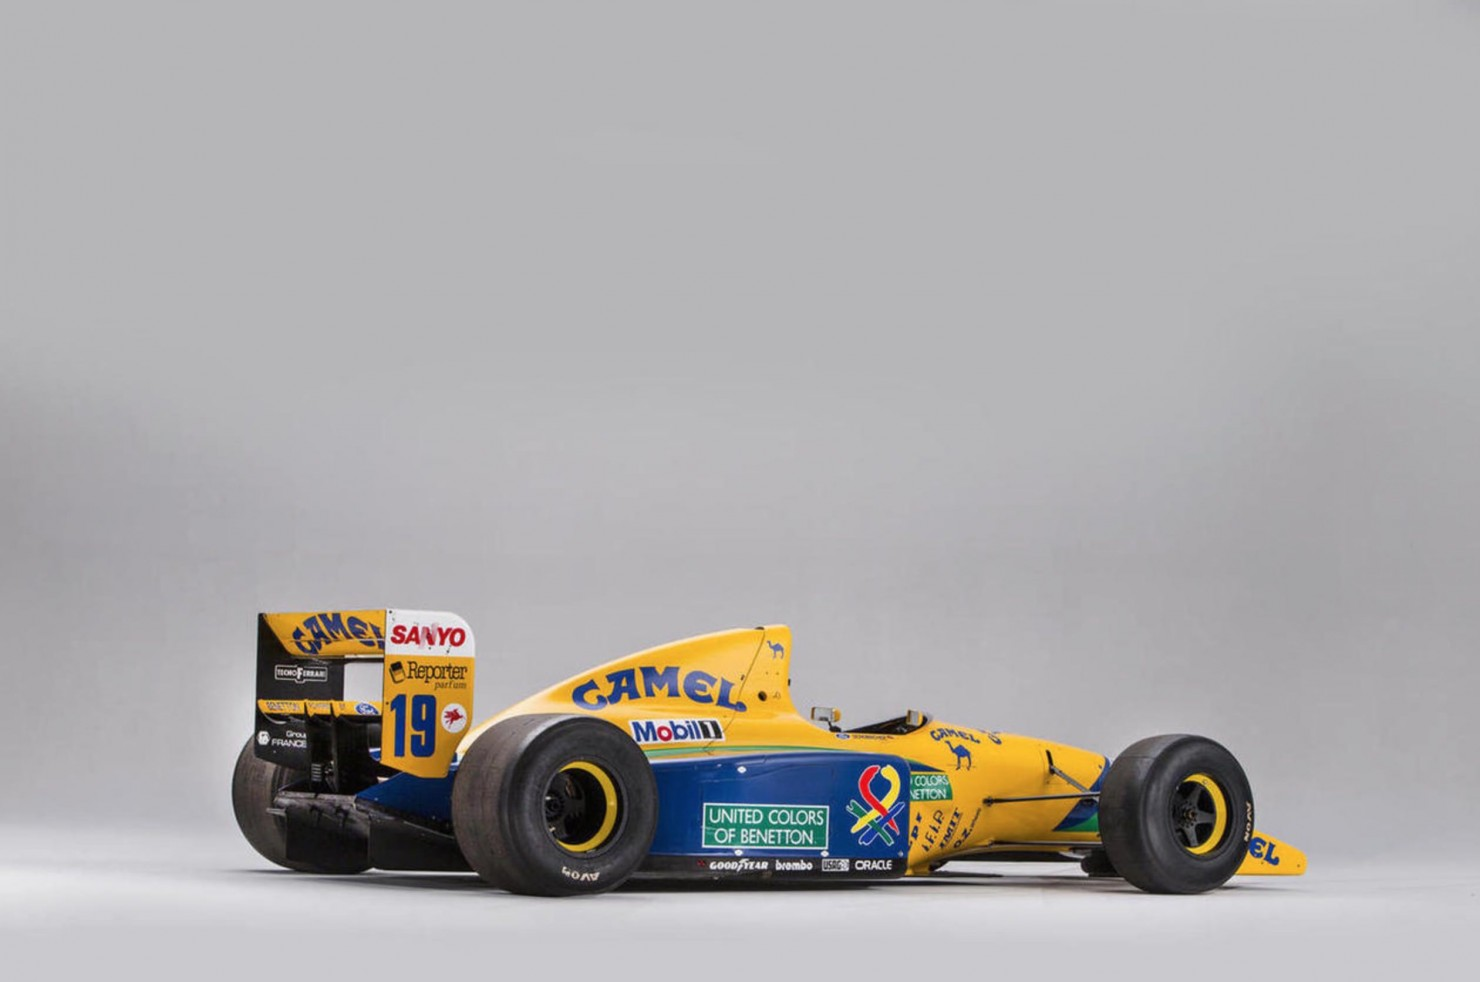 Ex-Schumacher Benetton Formula 1 Car